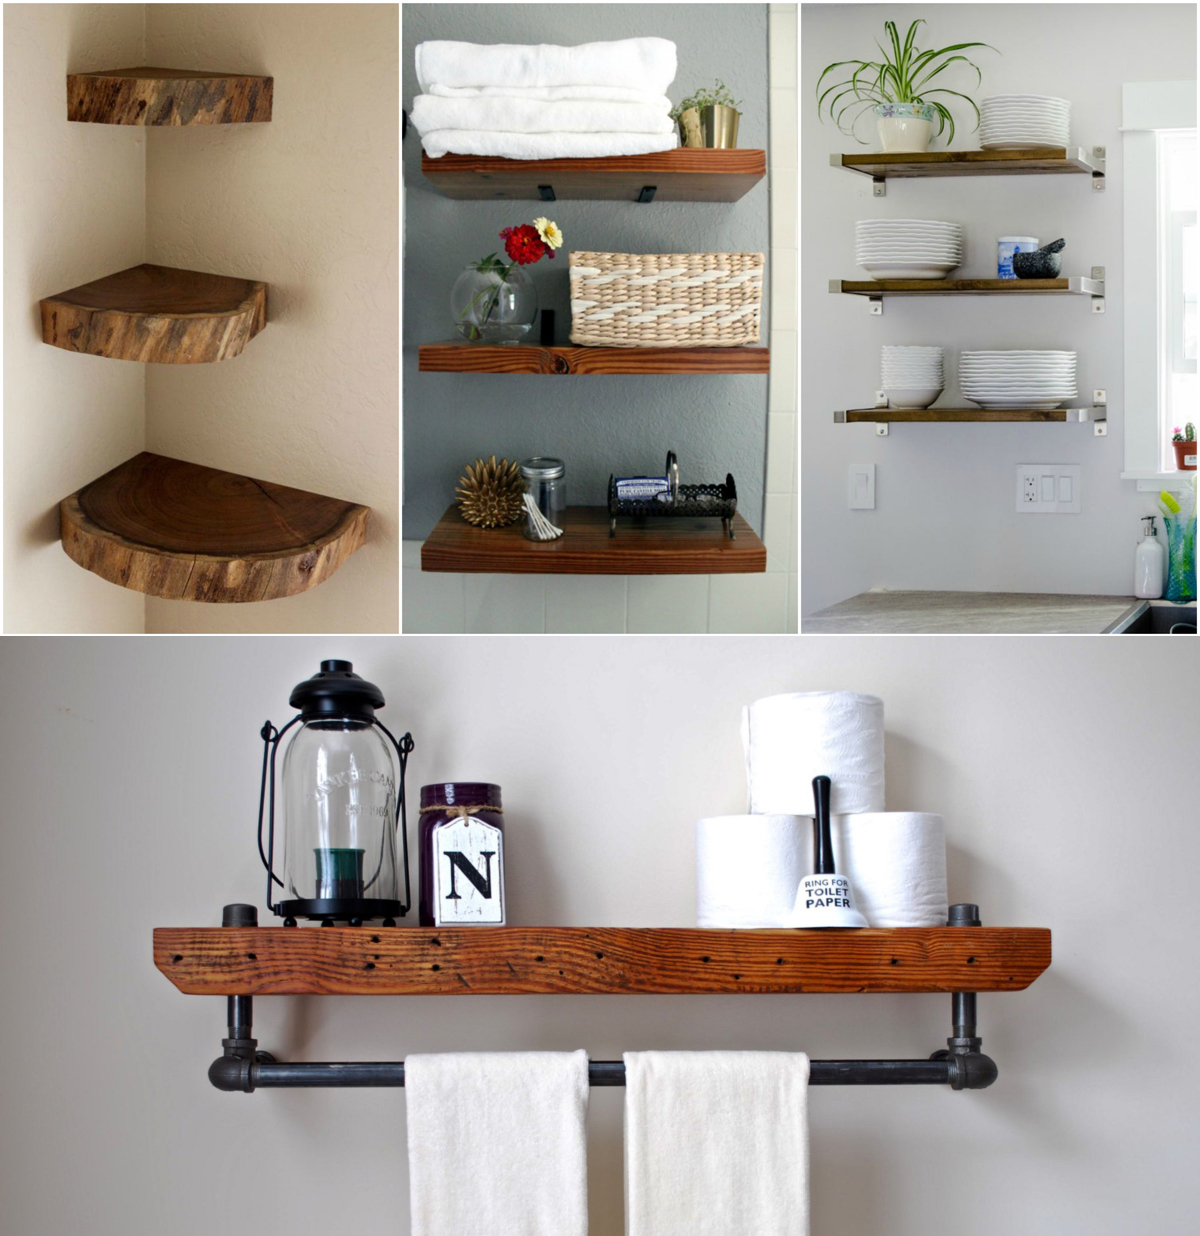 Oak-wooden-floating-shelves